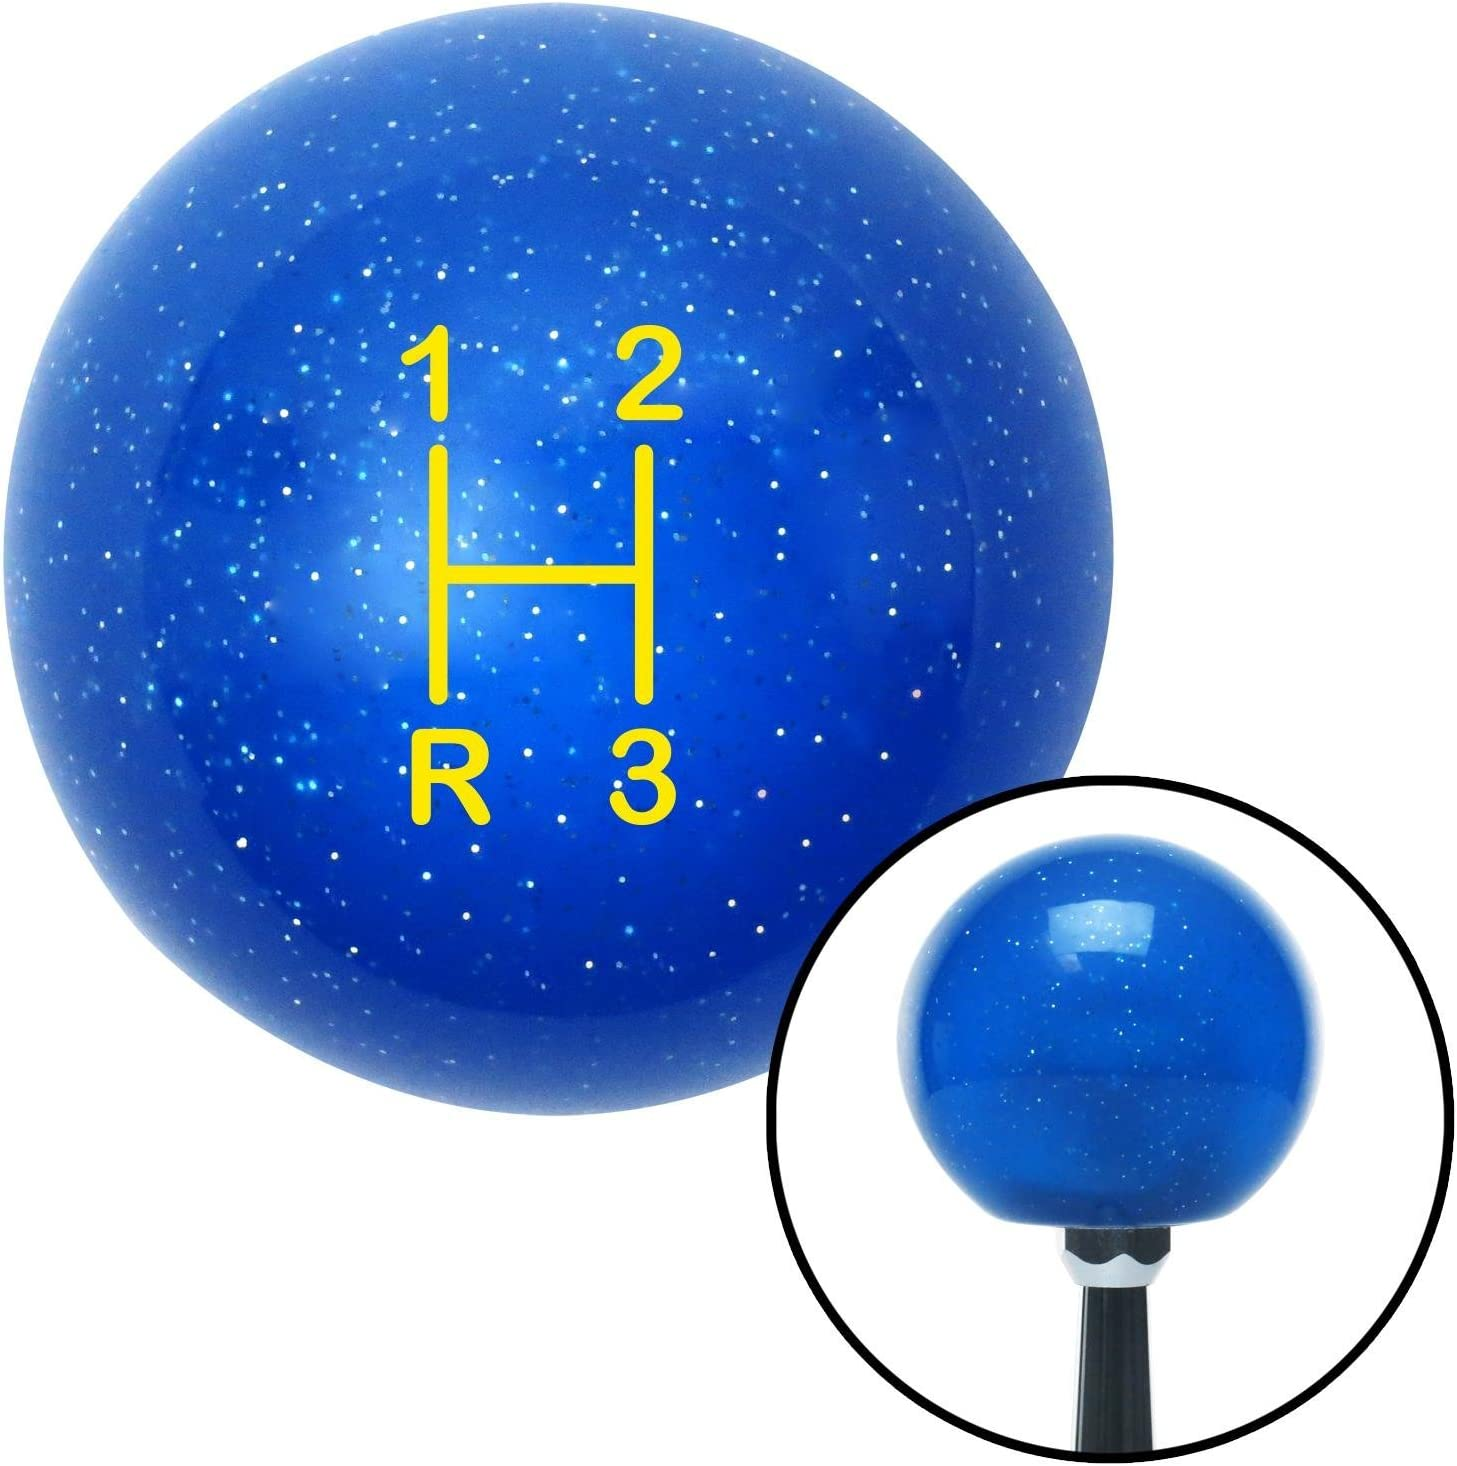 American Shifter 78774 Blue Metal Flake Shift Knob with M16 x 1.5 Insert Red Shift Pattern 13n